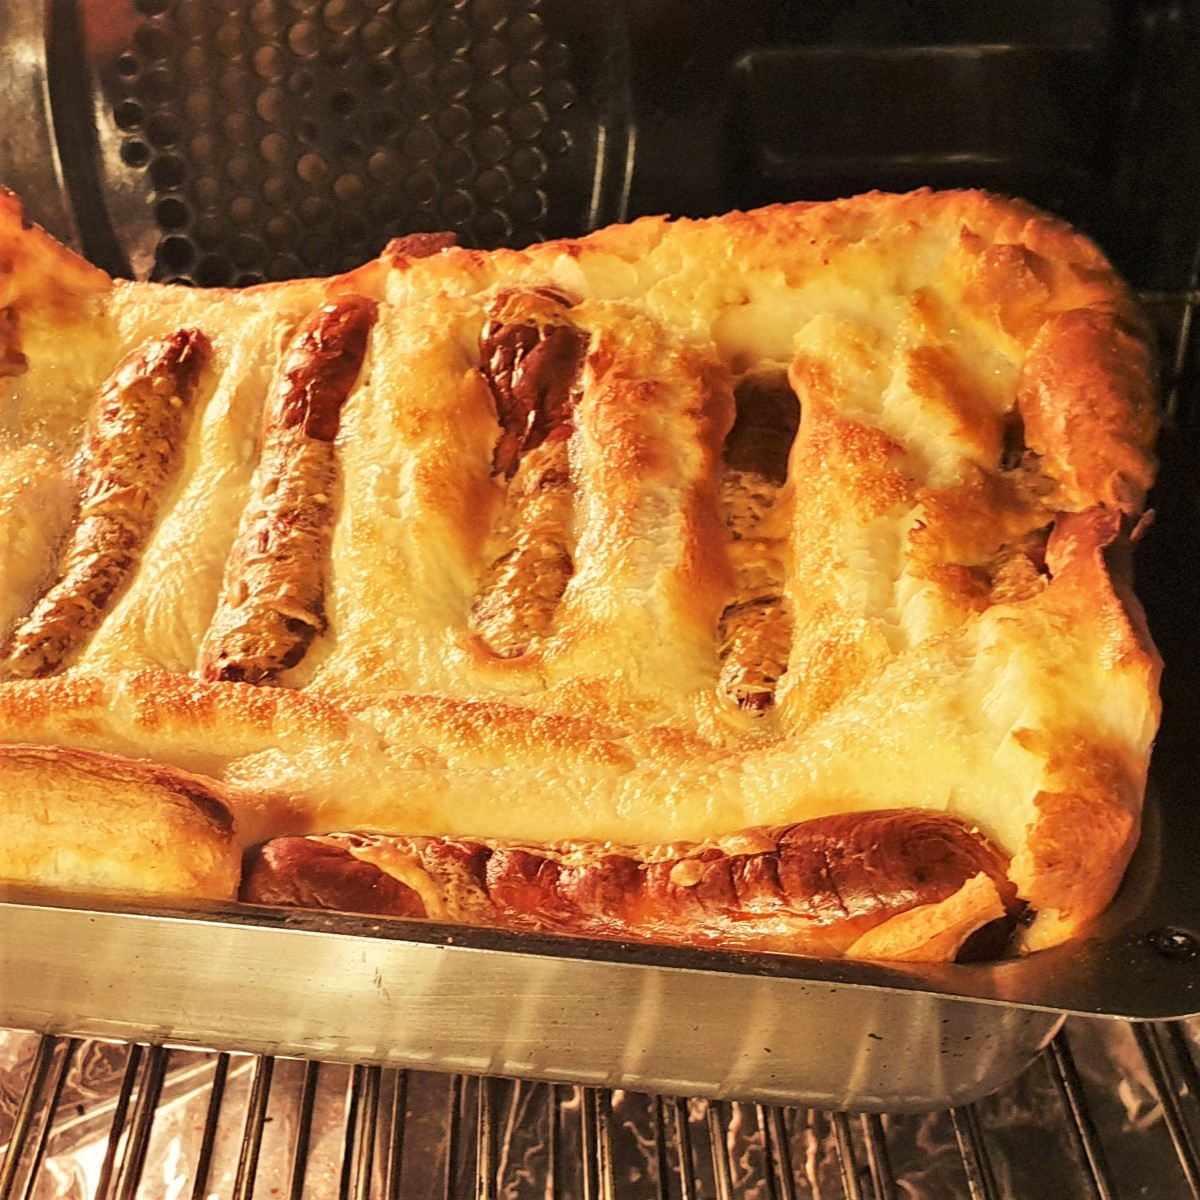 A tray of toad in the hole showing the sausages covered in wll-risen batter